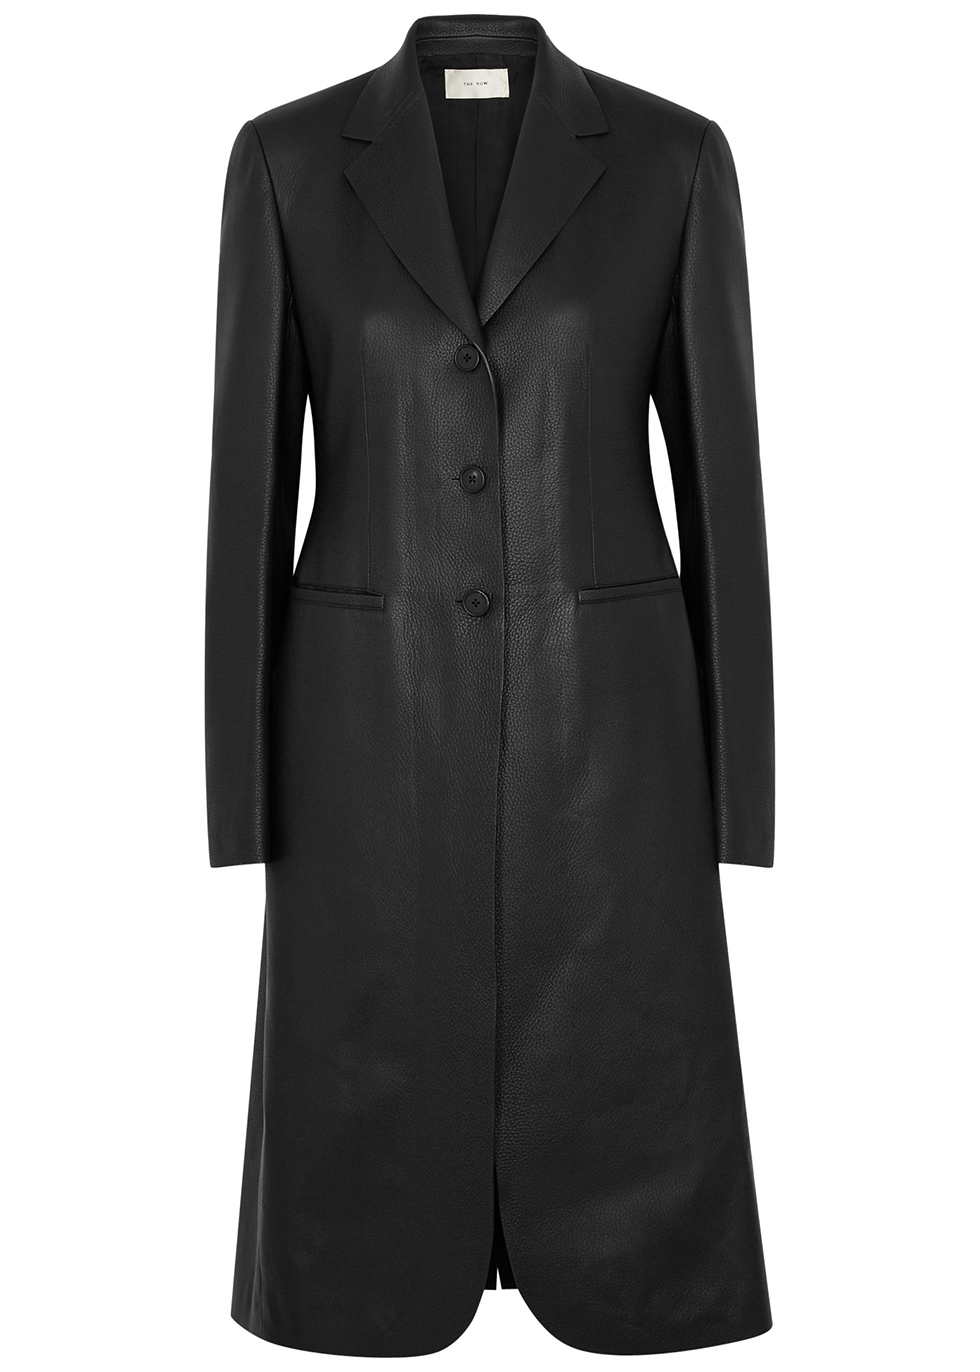 Panois black leather coat